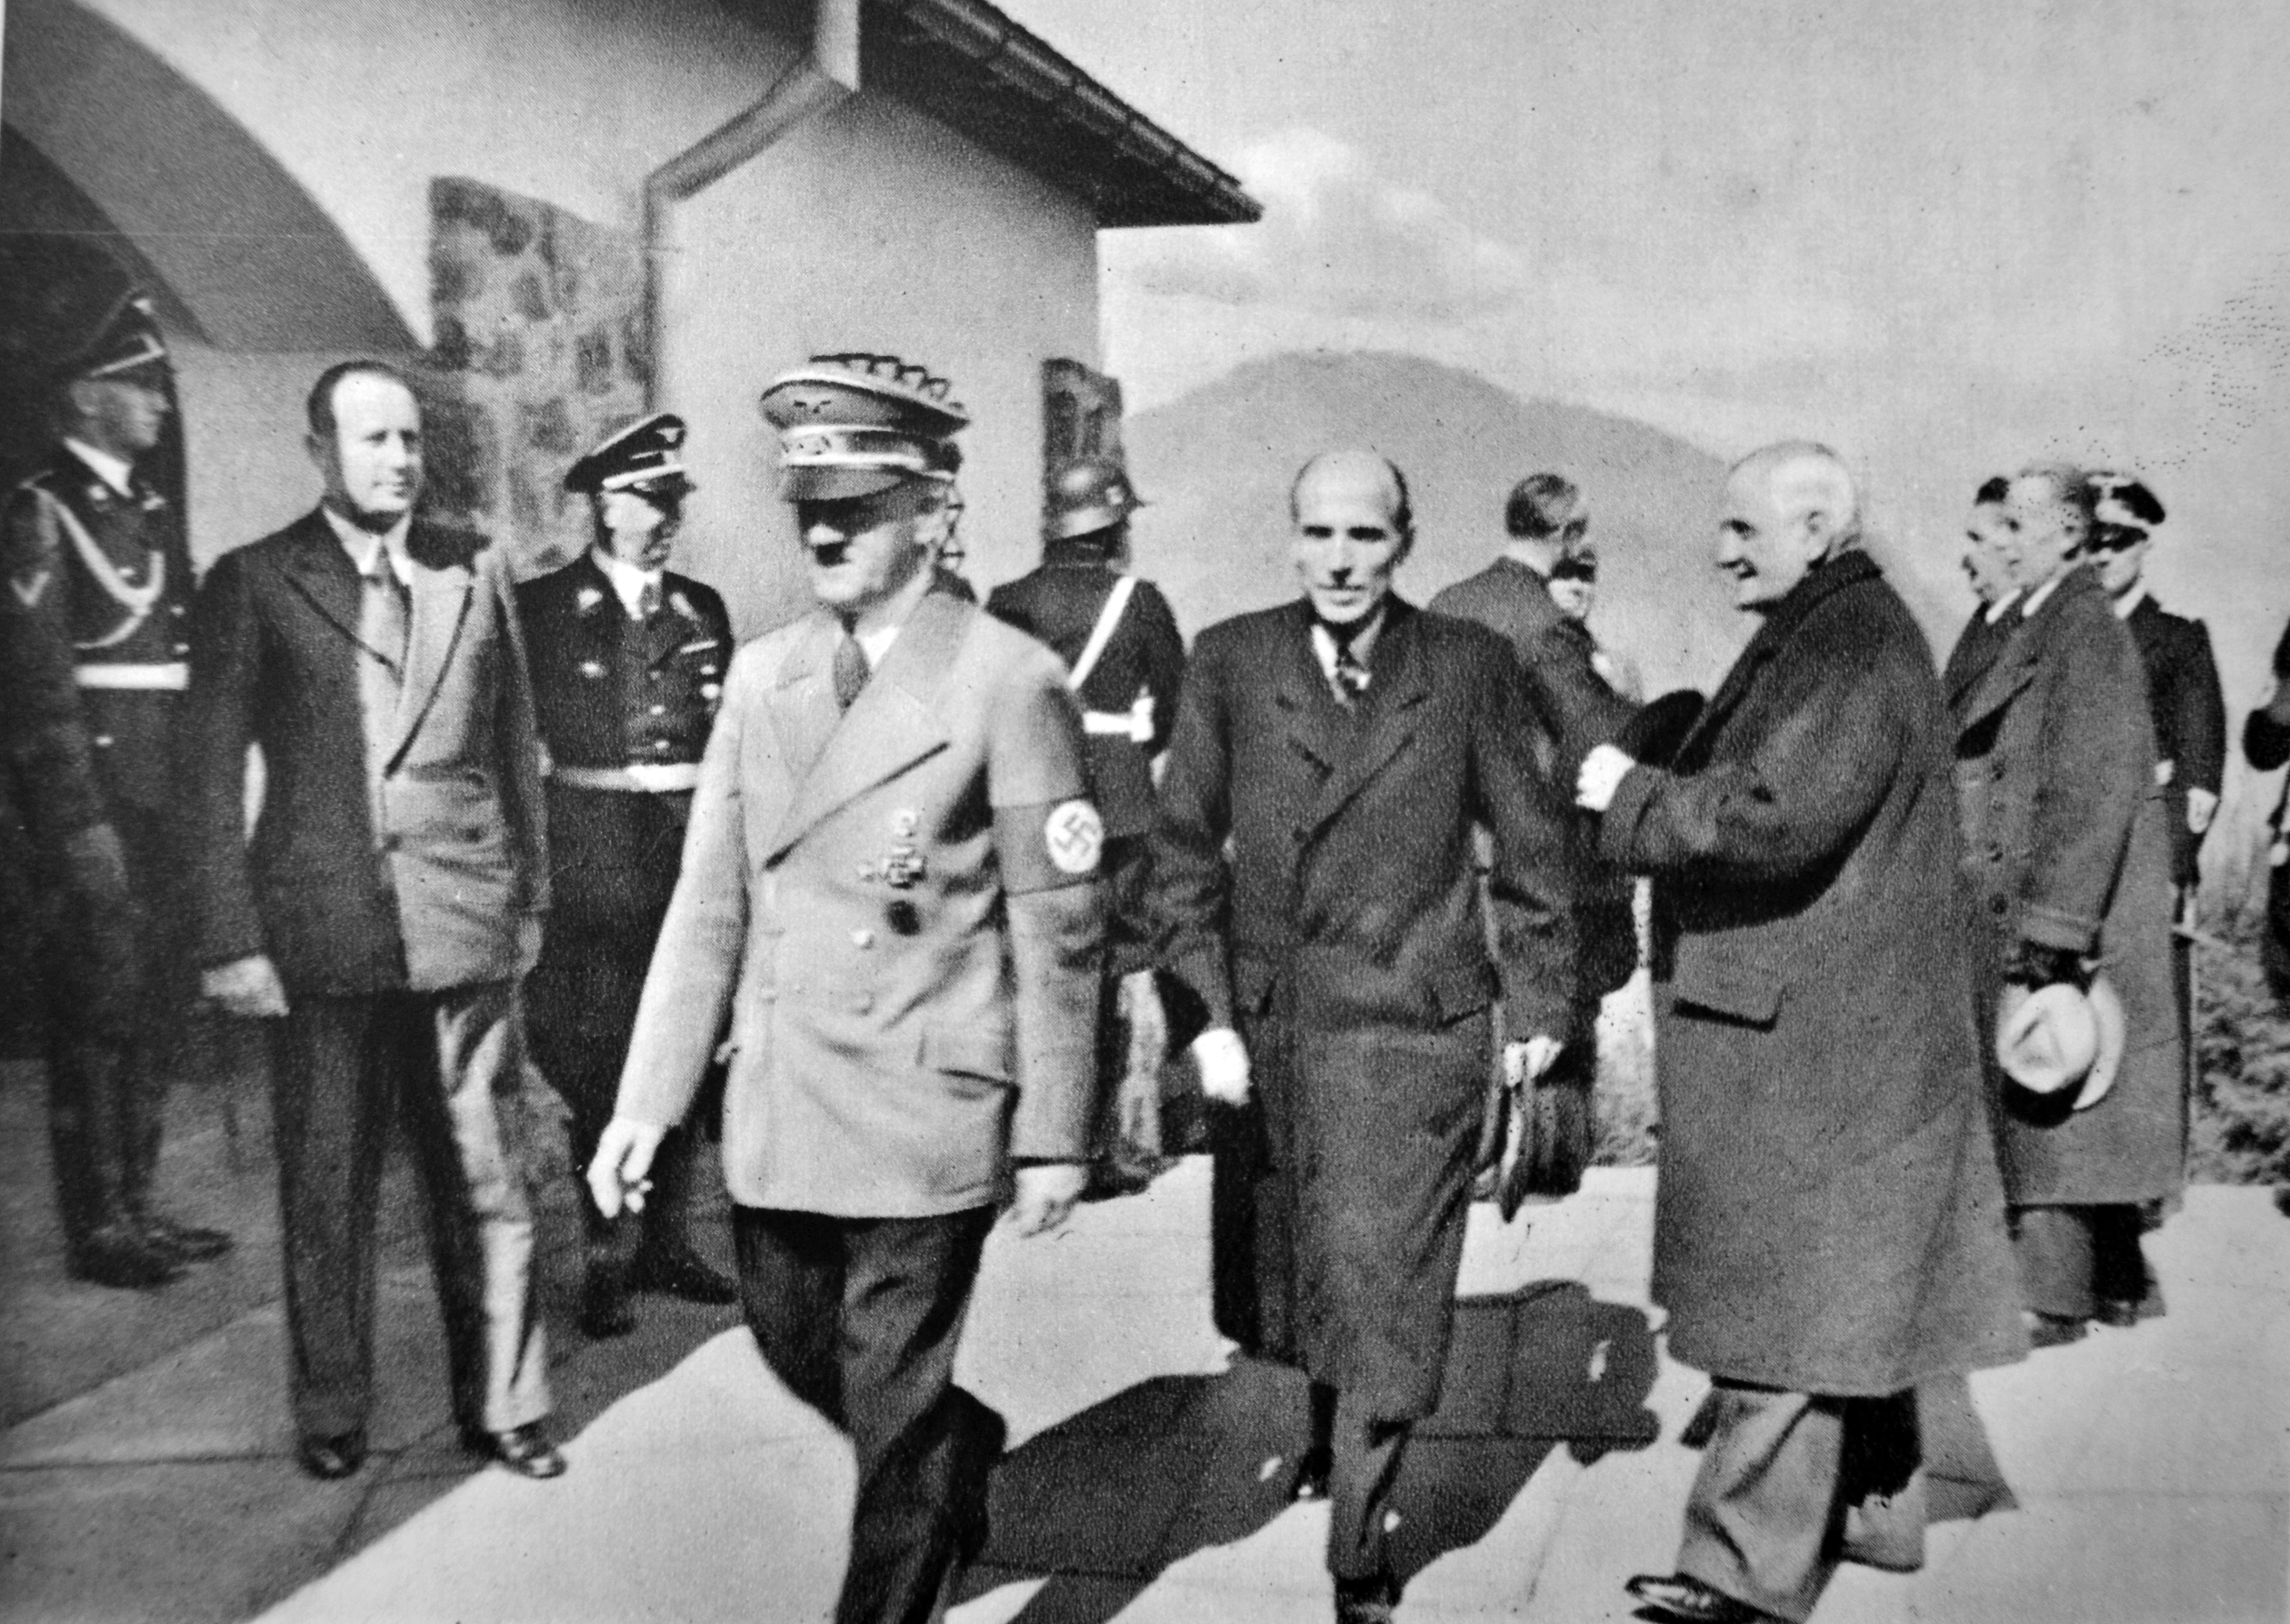 Adolf Hitler welcomes Prime Minister of Hungary Bela Imredy and Foreign Minister Kalman de Kanya at the Berghof